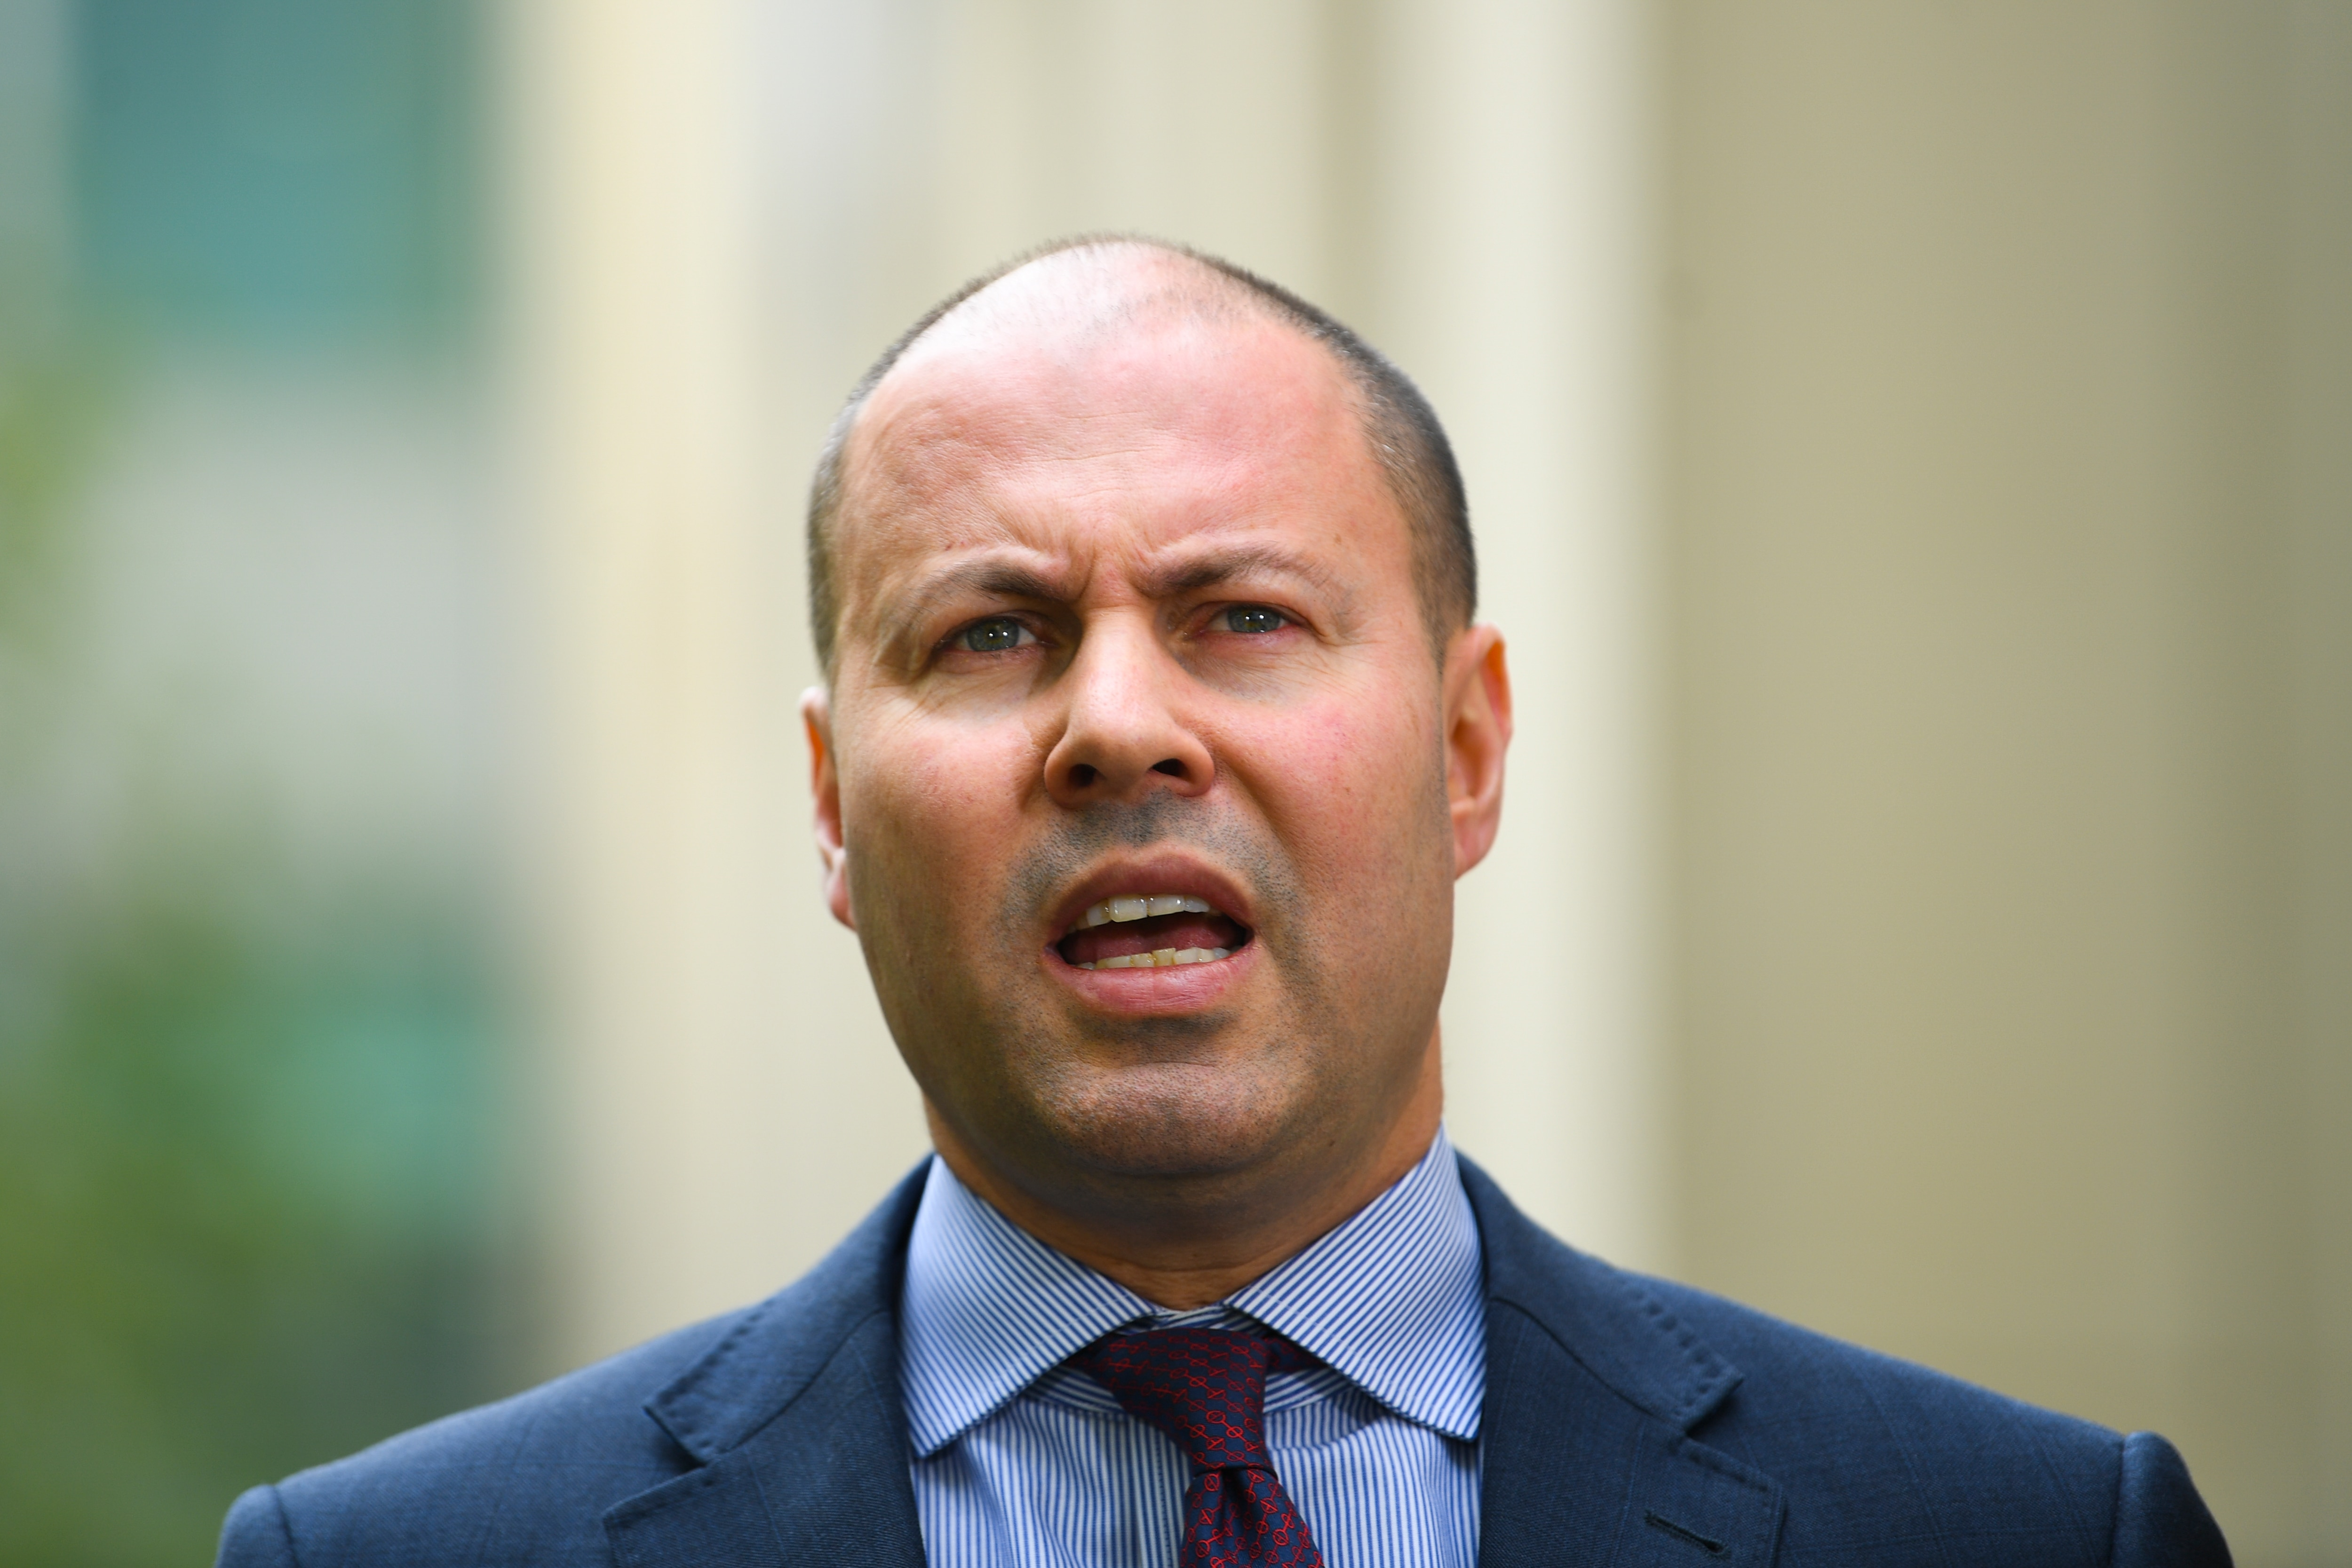 Treasurer Josh Frydenberg speaks to the media during a press conference at Parliament House in Canberra.